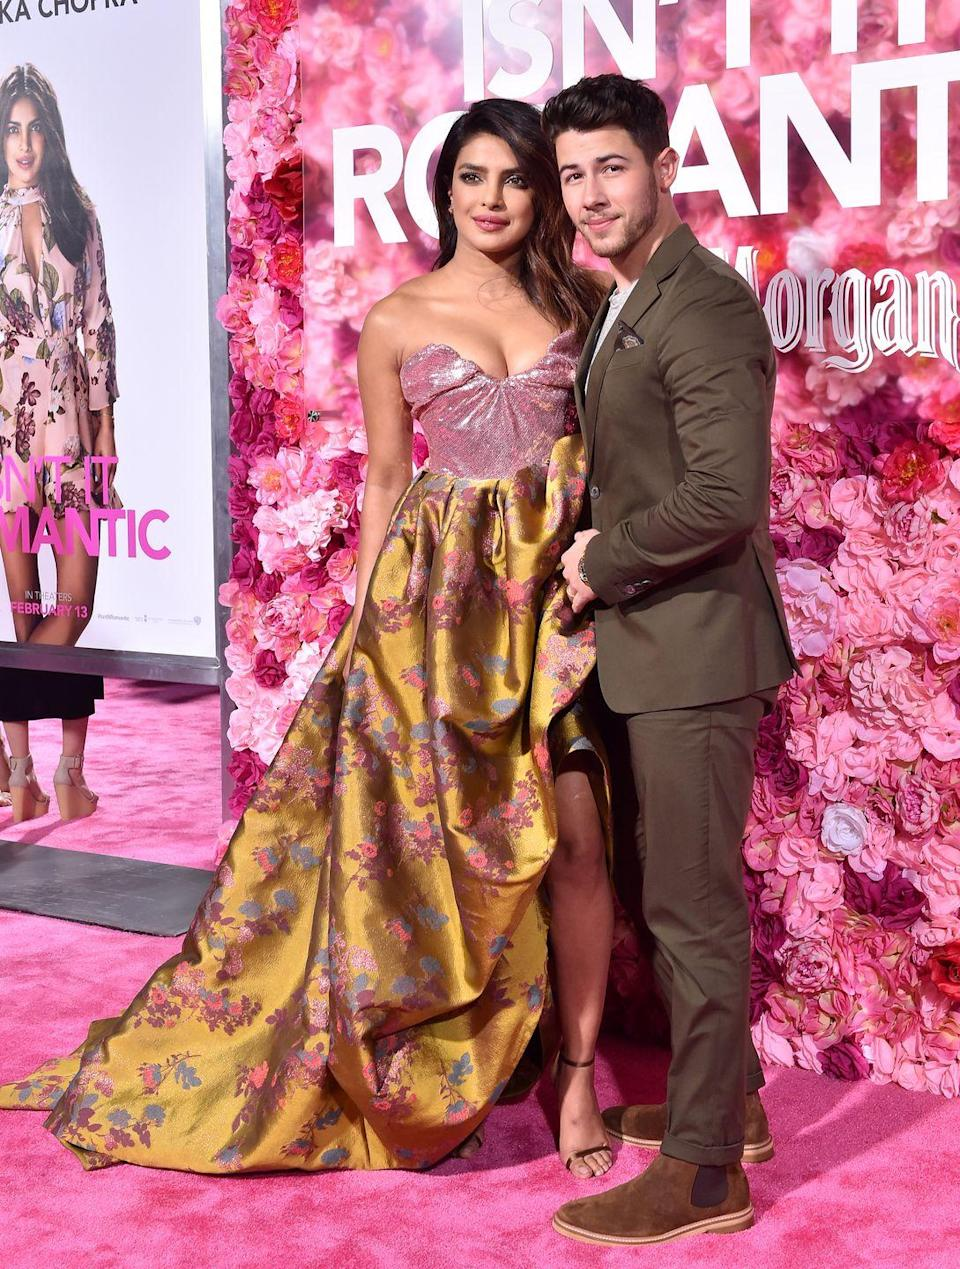 <p>Priyanka Chopra and Nick Jonas attend the premiere of Warner Bros. Pictures' 'Isn't It Romantic' at The Theatre at Ace Hotel on February 11, 2019 in Los Angeles, California. </p>